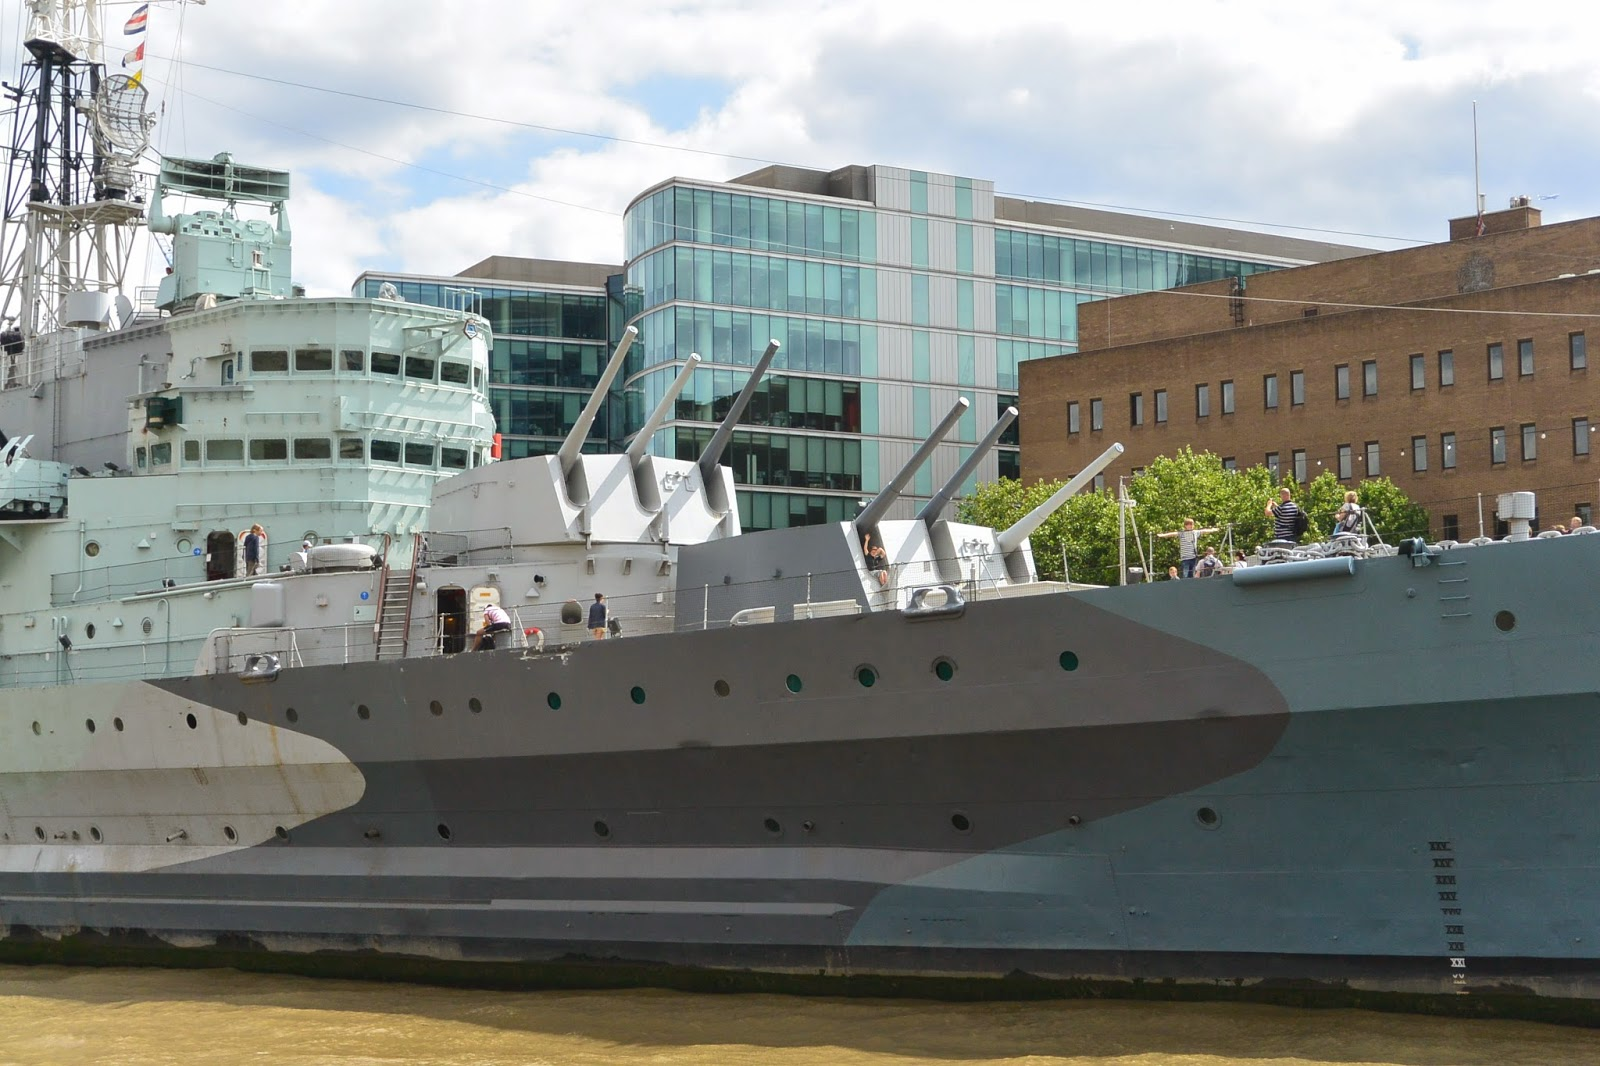 HMS Belfast, River Thames, London, UK